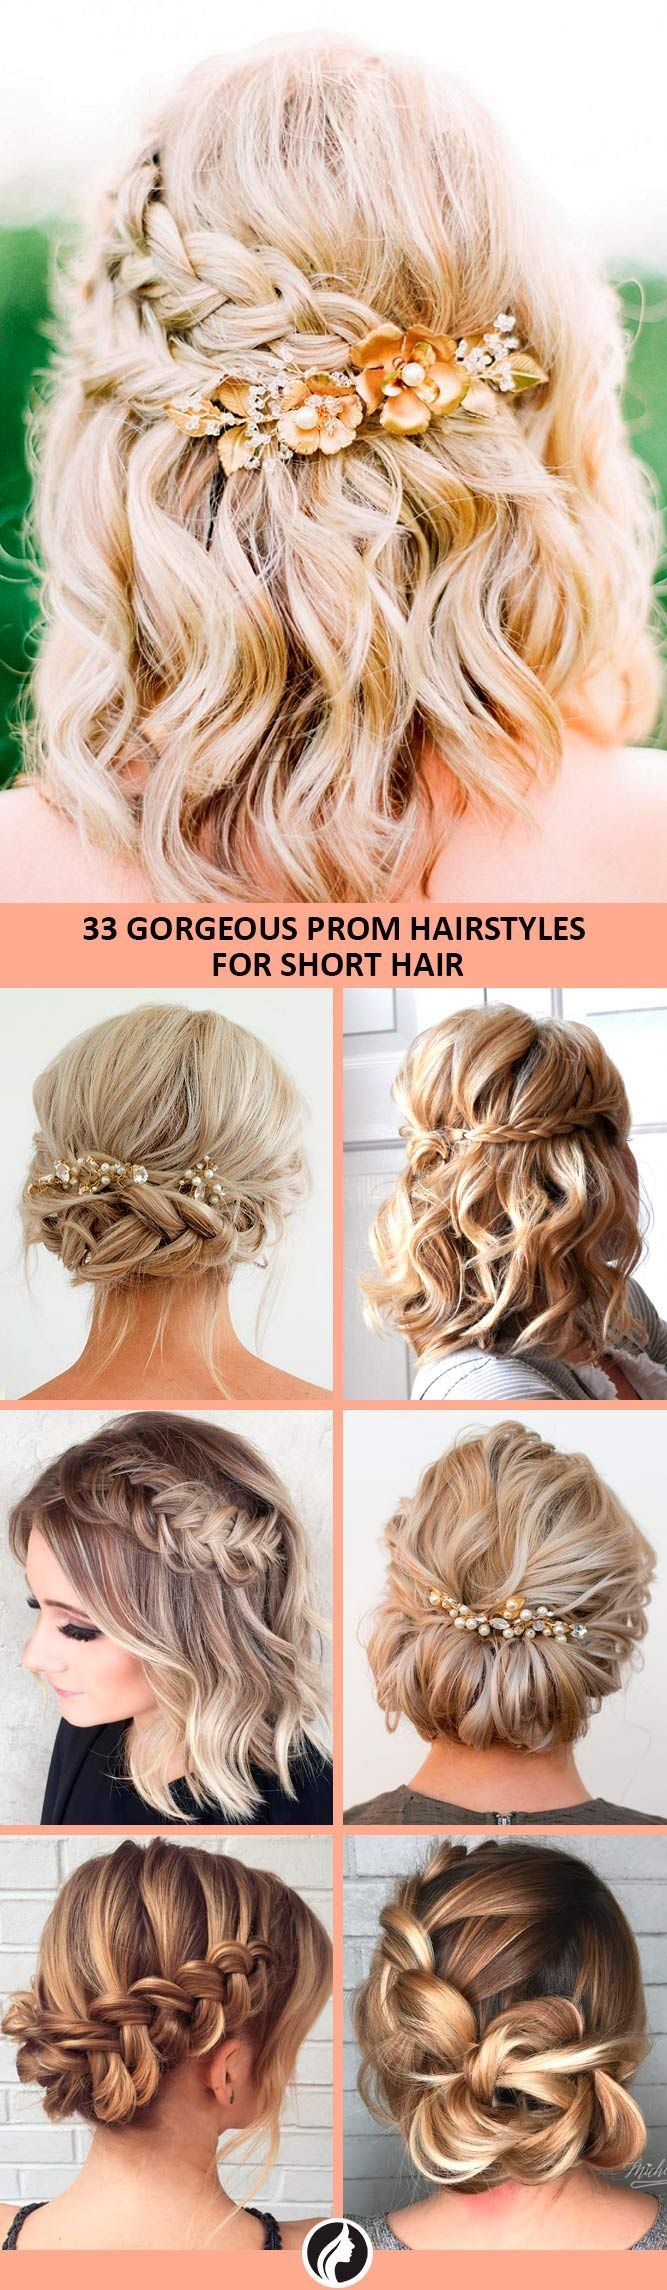 Easy Hairstyles For Short Hair Magnificent Looking For A Simple But Beautiful Hairstyle For Your Prom Night